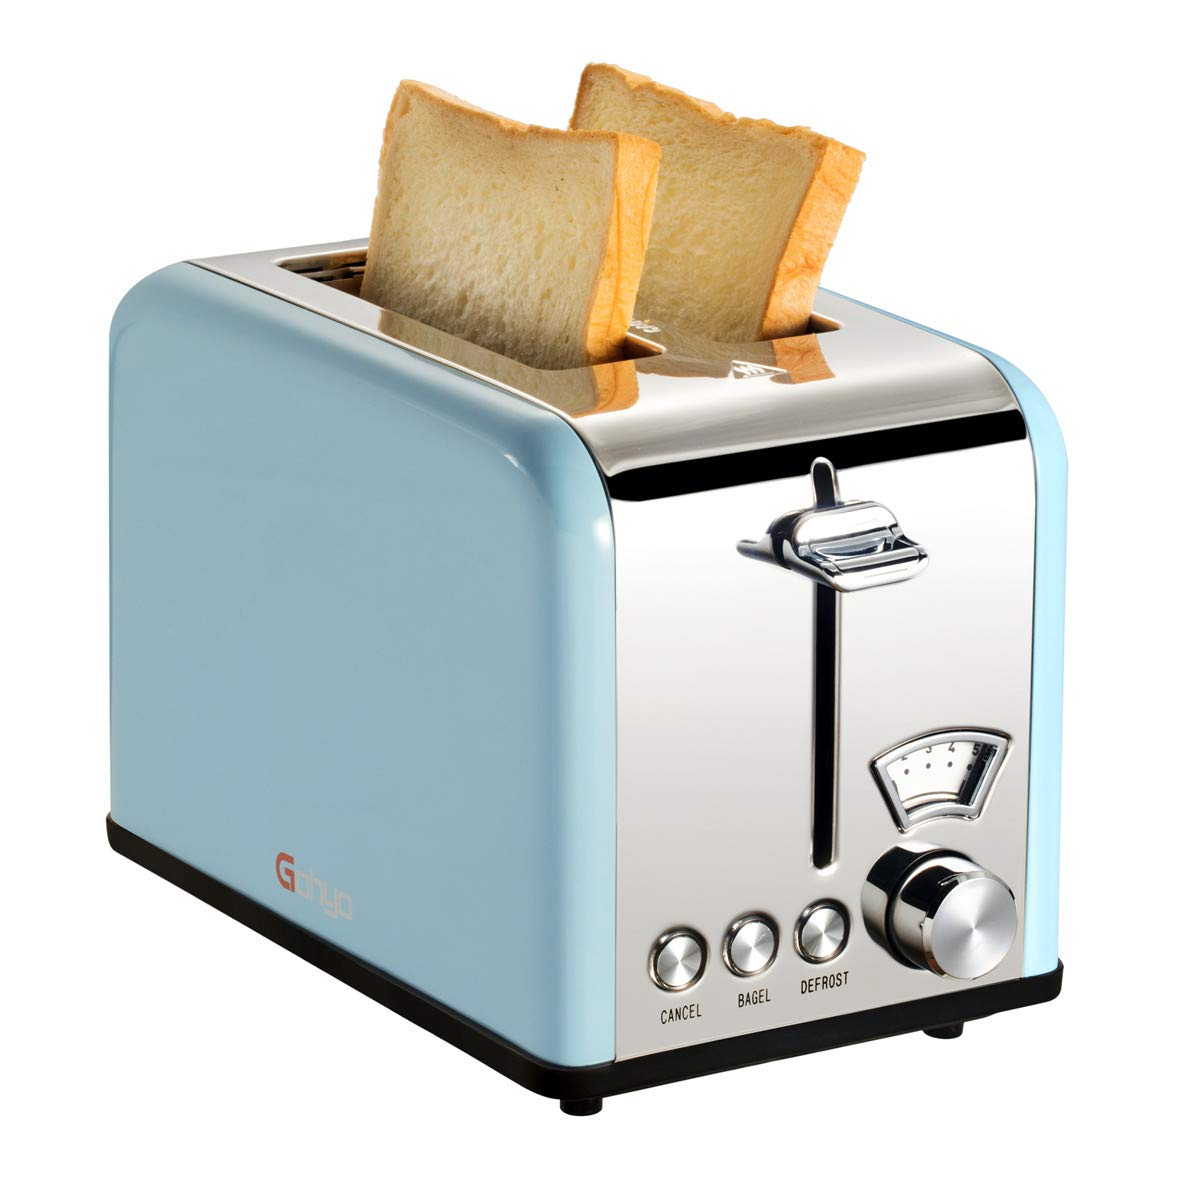 Gohyo 2 Slice Toaster | Stainless Steel with Wide Slots & Removable Crumb Tray for Bread & Bagels